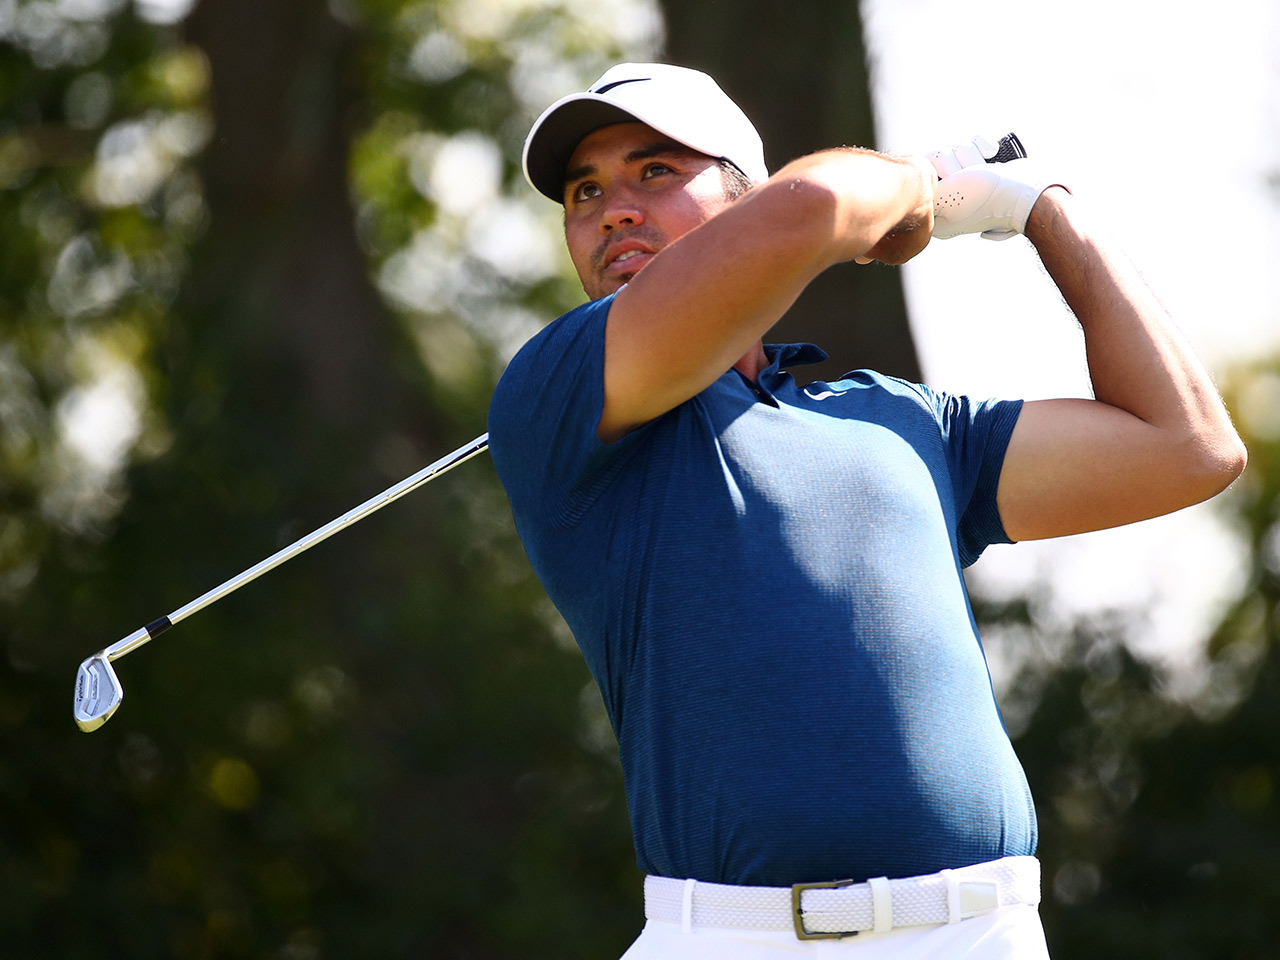 How 7 Golfers Train to Blast Powerful Drives on the PGA Tour